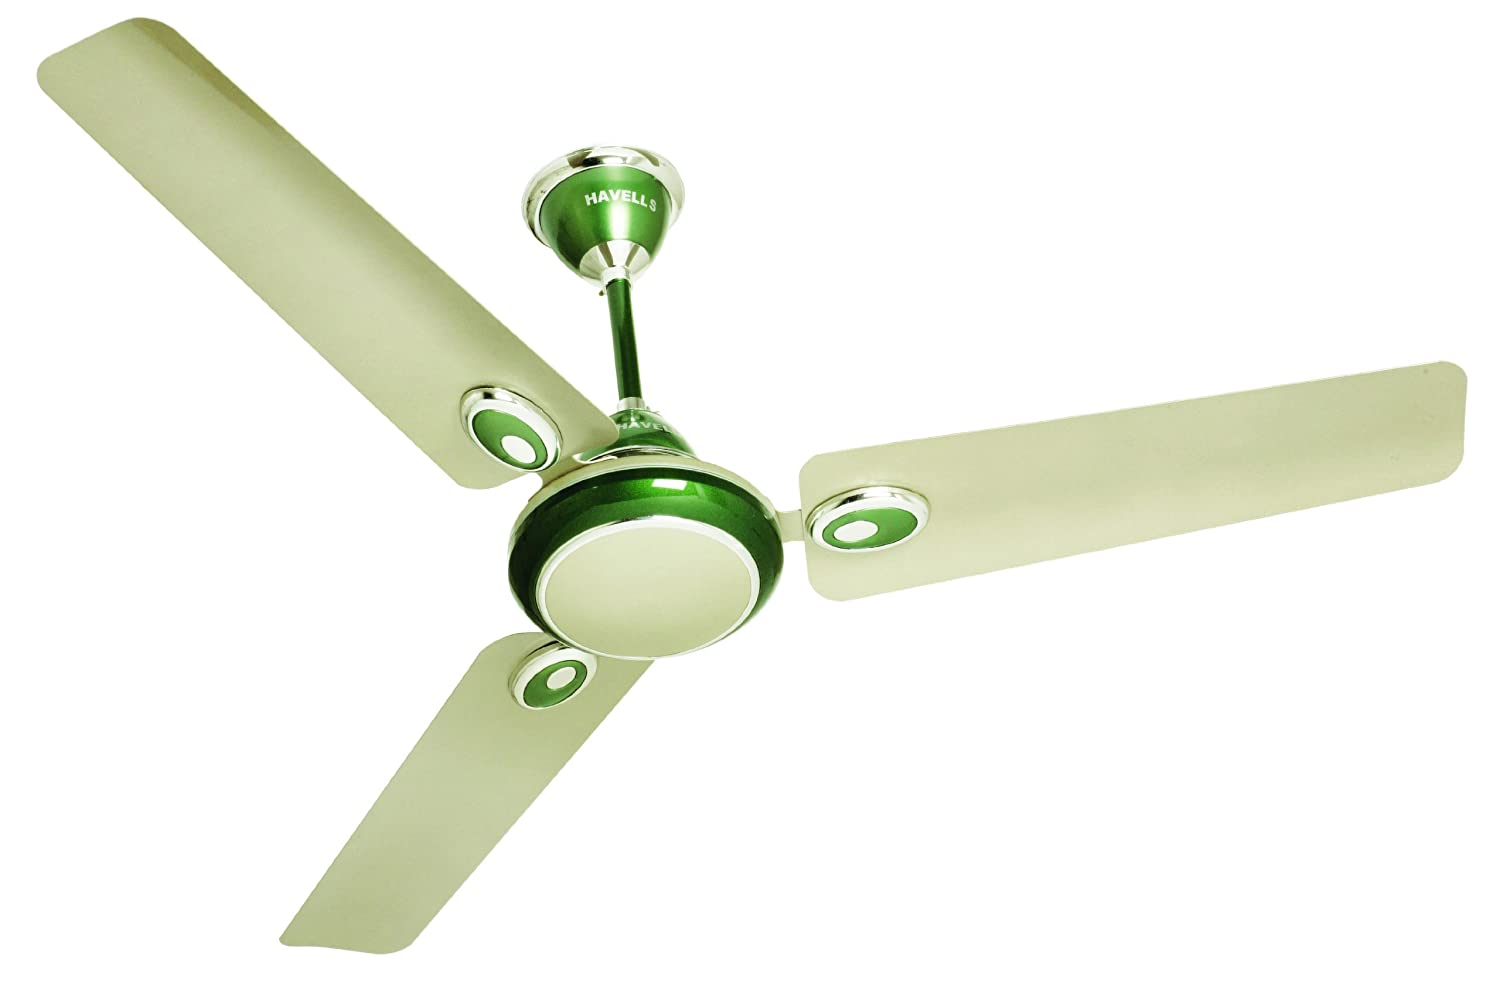 Buy havells fusion 1200mm ceiling fan oasis green online at low buy havells fusion 1200mm ceiling fan oasis green online at low prices in india amazon aloadofball Images